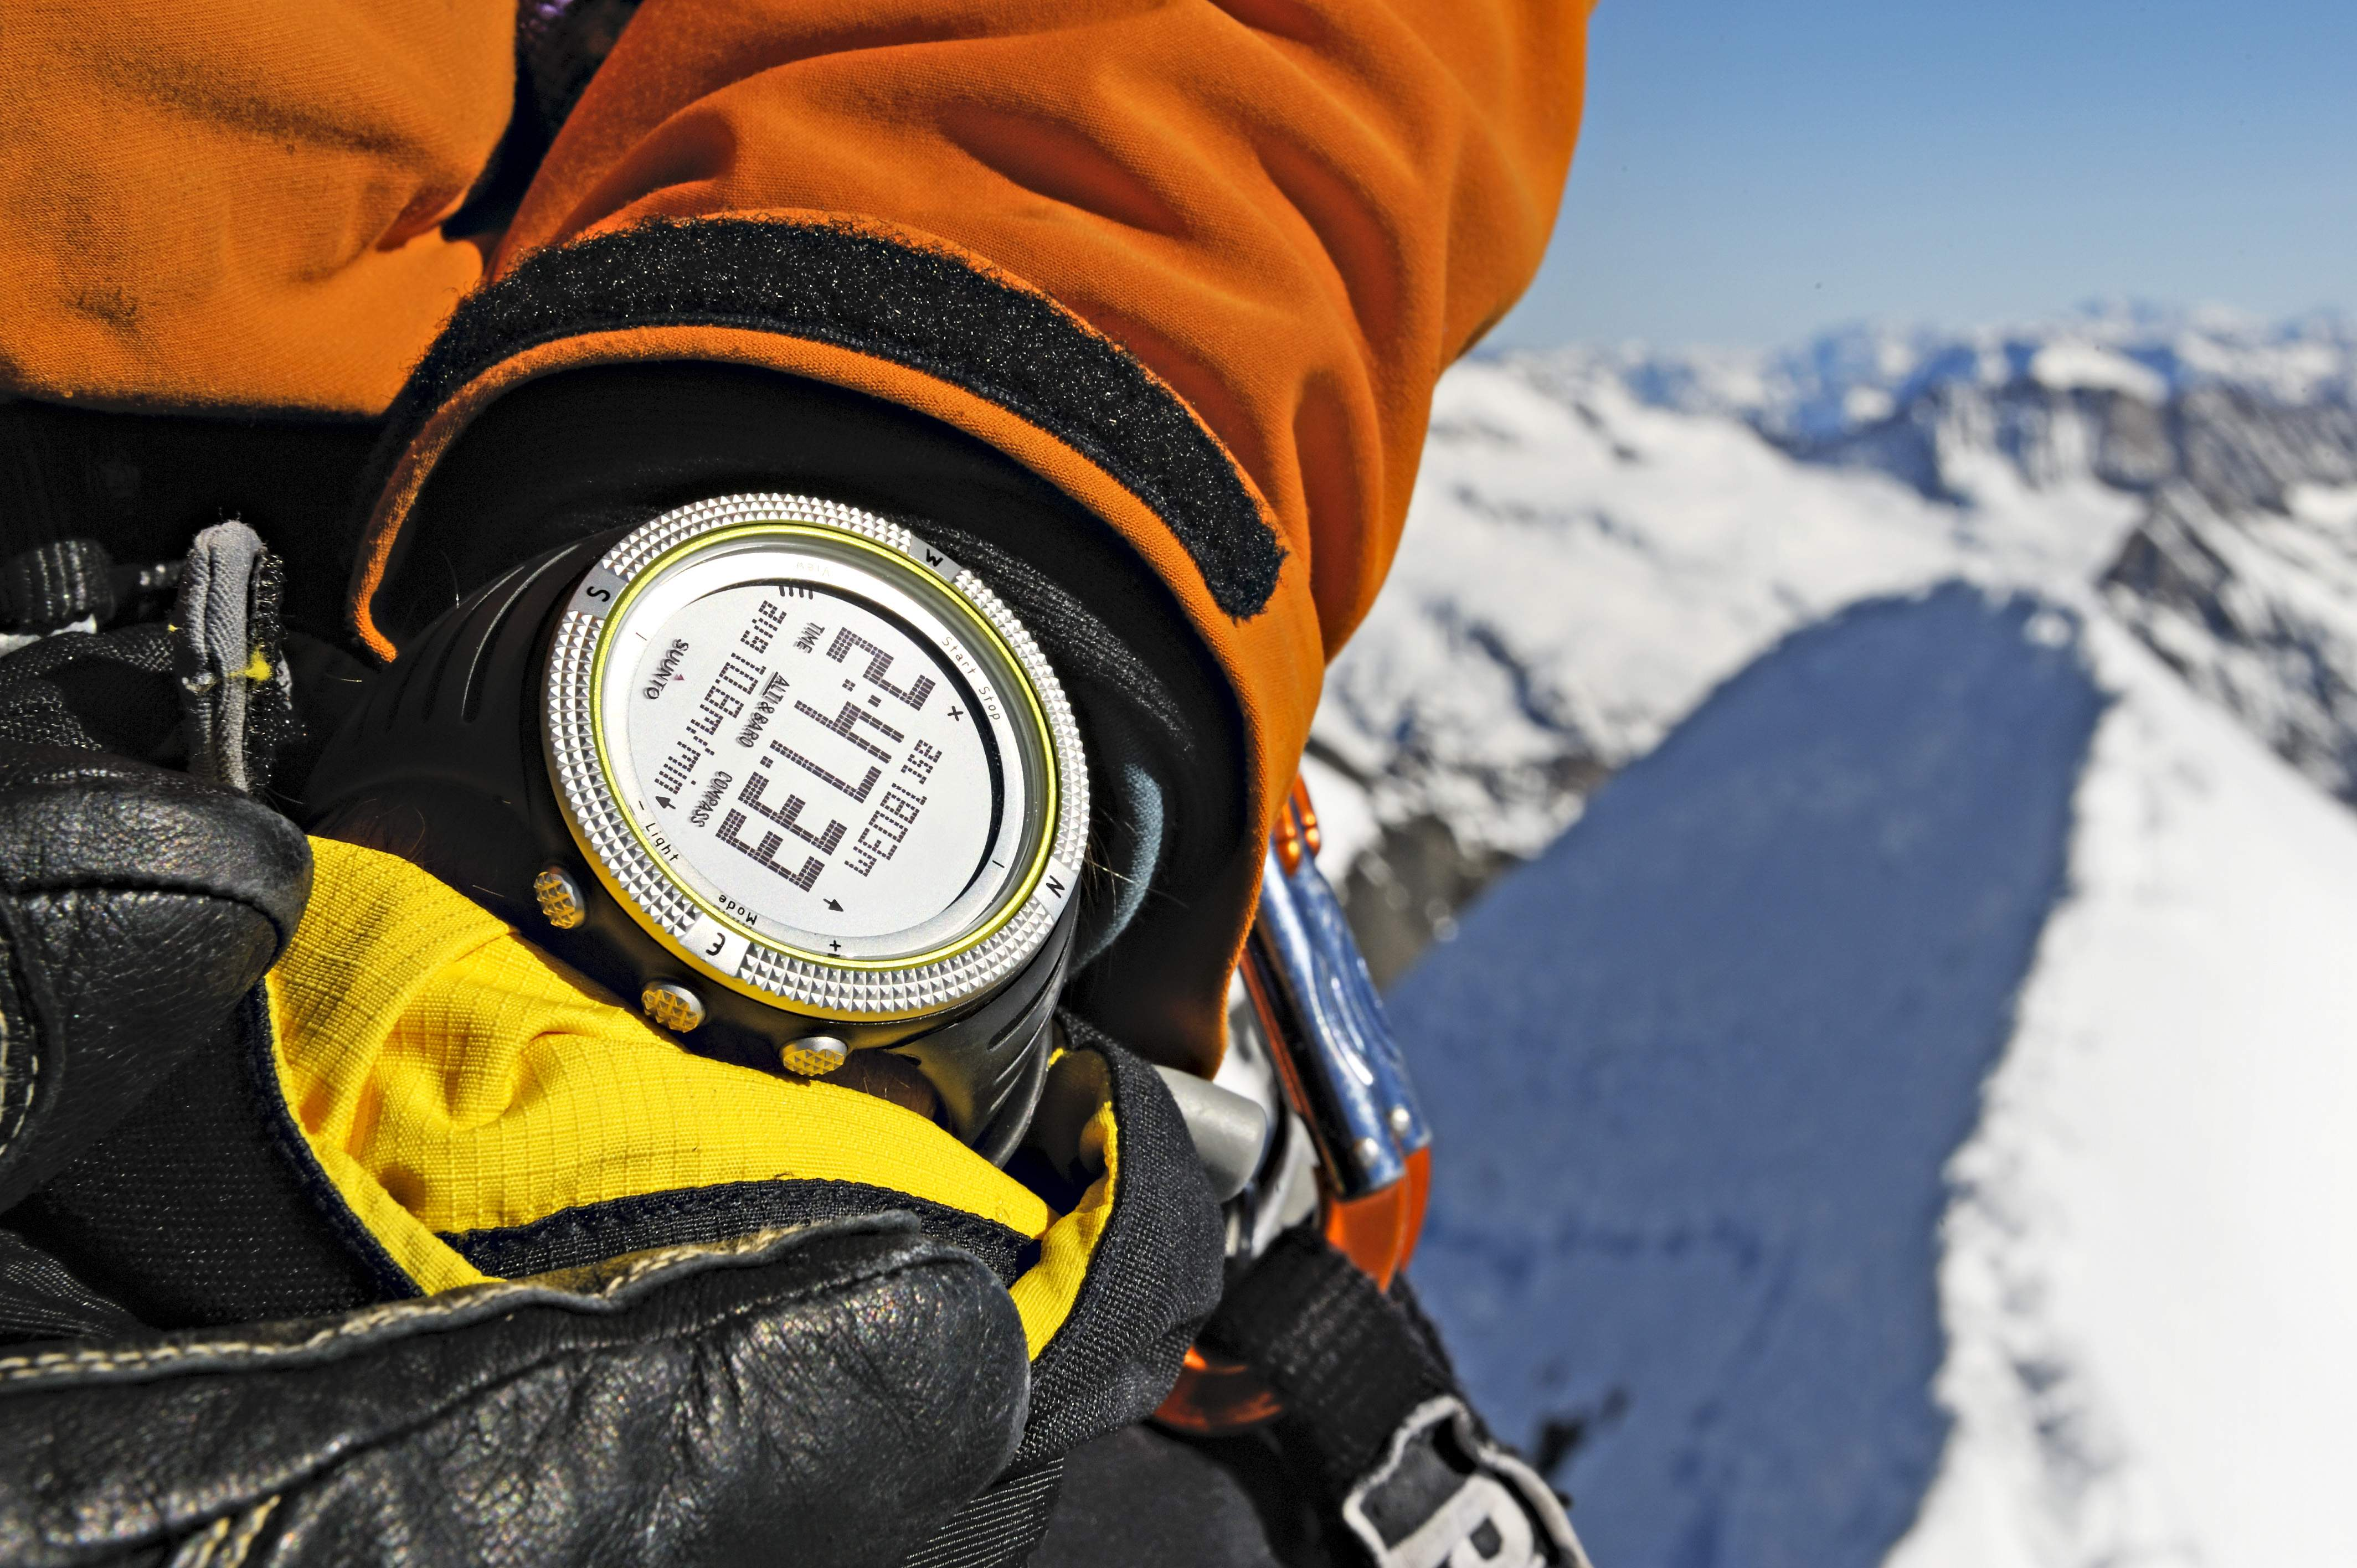 Ueli_Steck_on_Eiger106